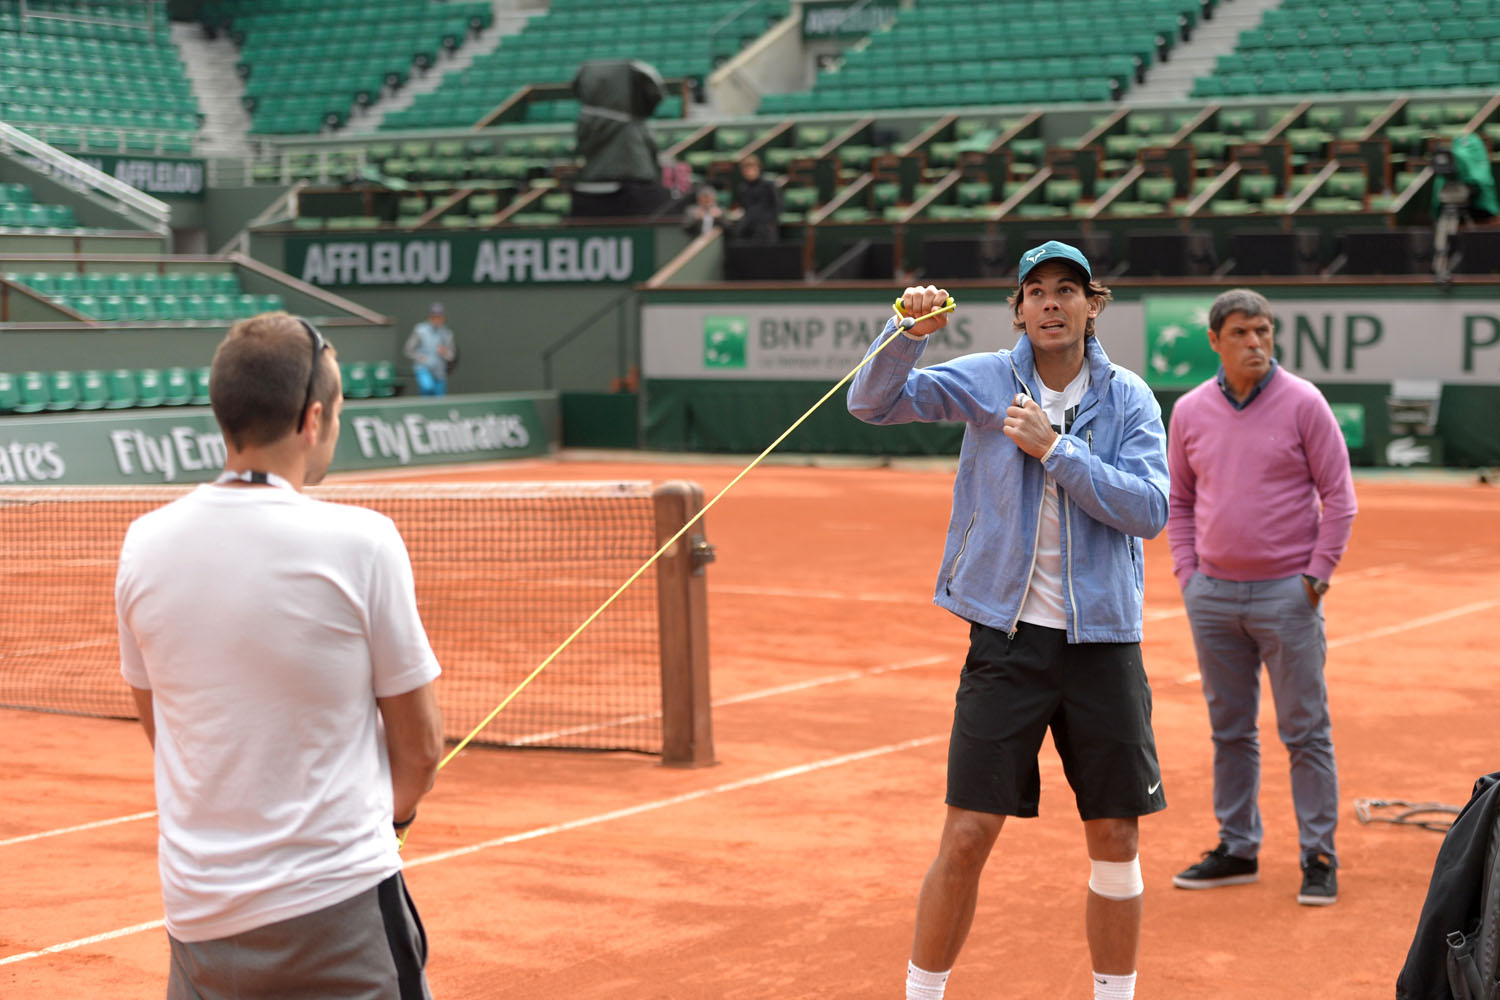 Tennis pro Rafael Nadal takes part in a training session before the French Tennis Open at the Roland Garros stadium in Paris on May 23, 2013.